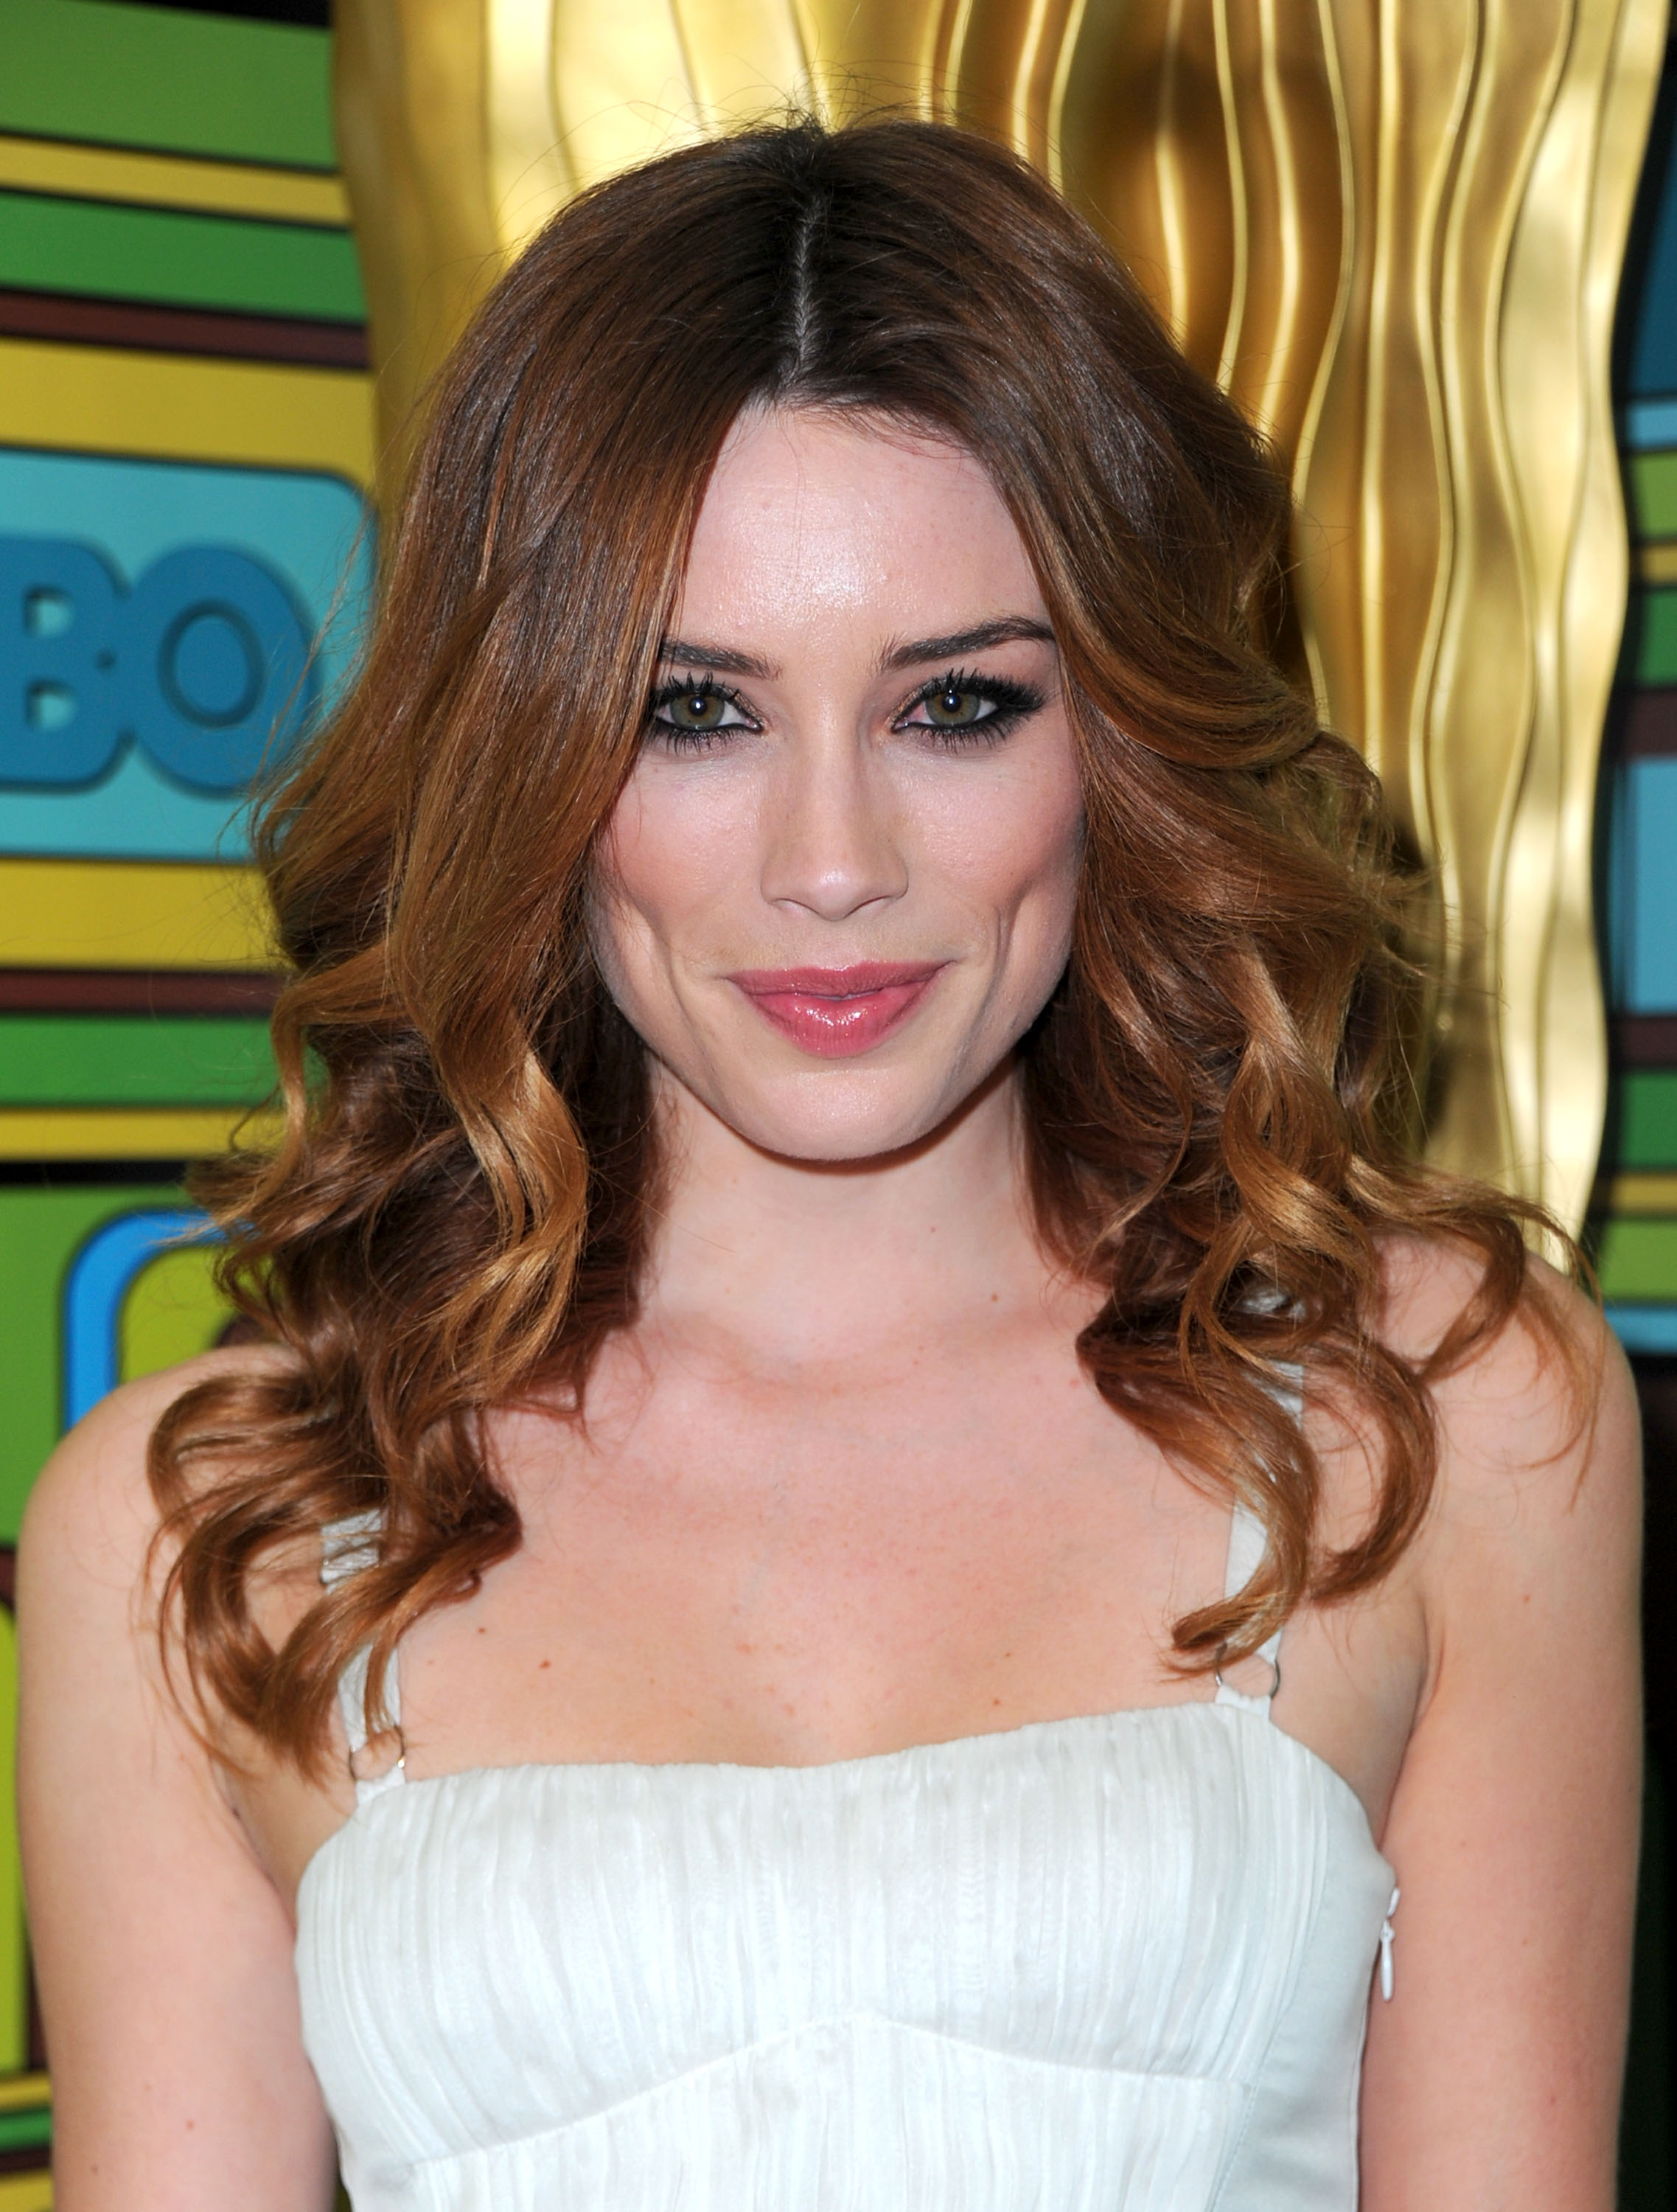 Arielle Vandenberg nudes (52 pics), cleavage Paparazzi, iCloud, see through 2018